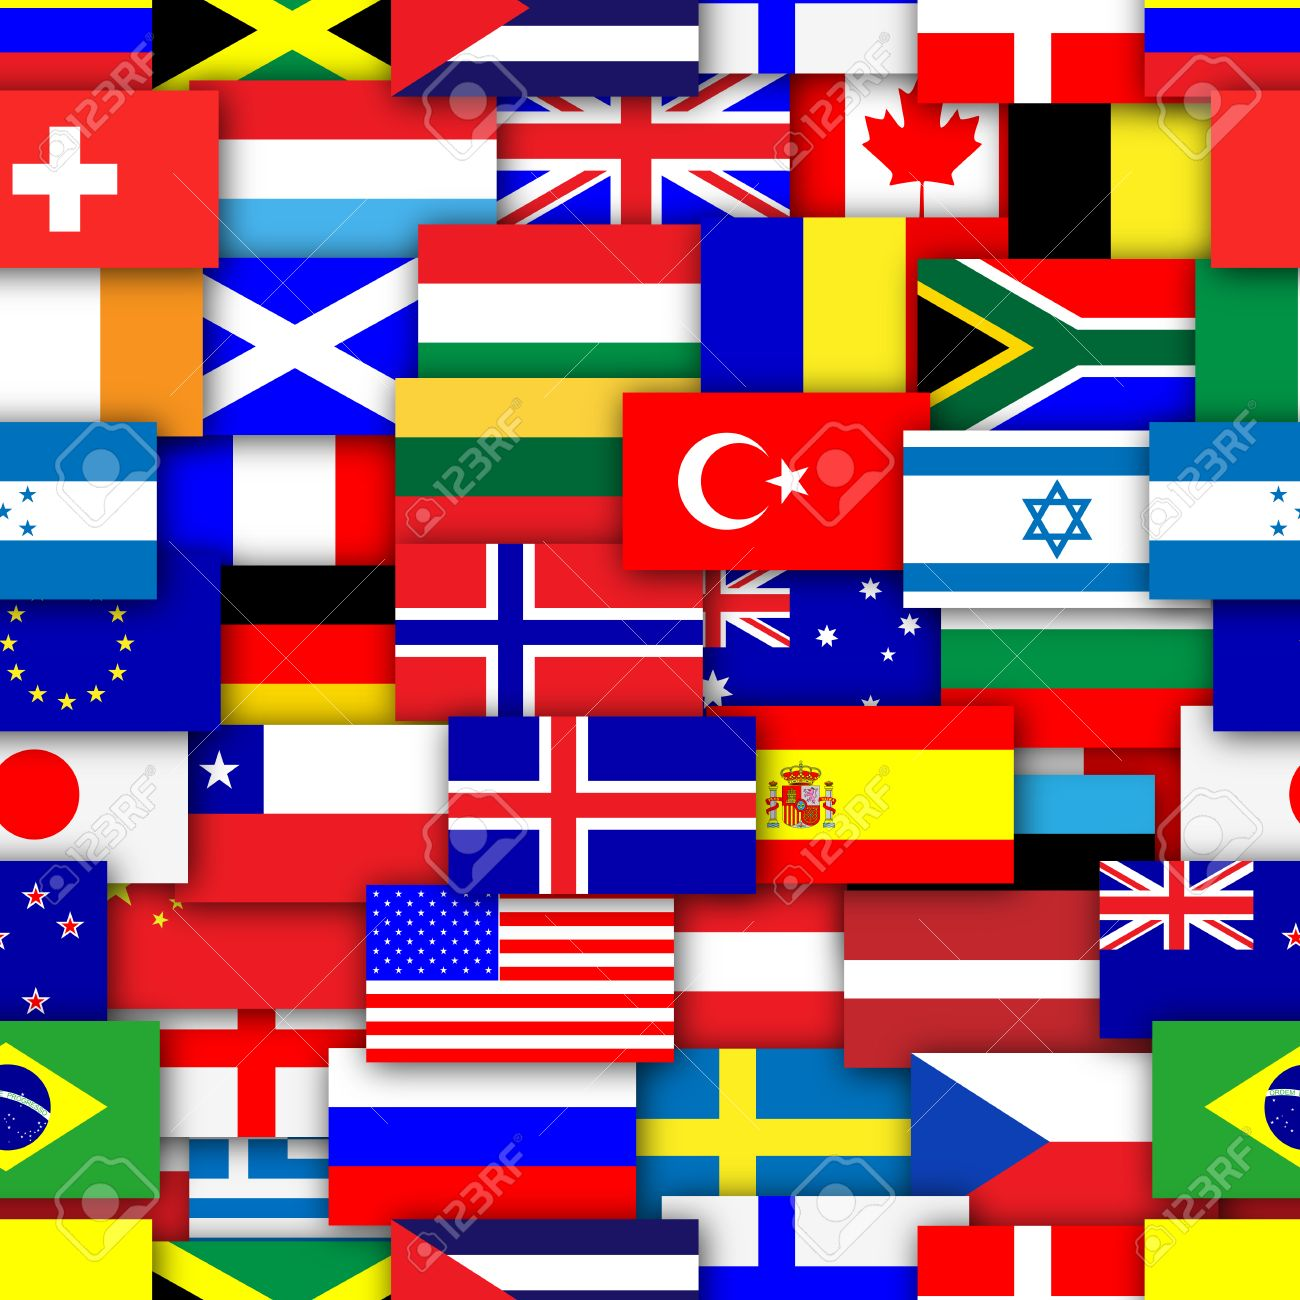 Flags of the world repeating tileable background wallpaper Stock Photo - 23191307